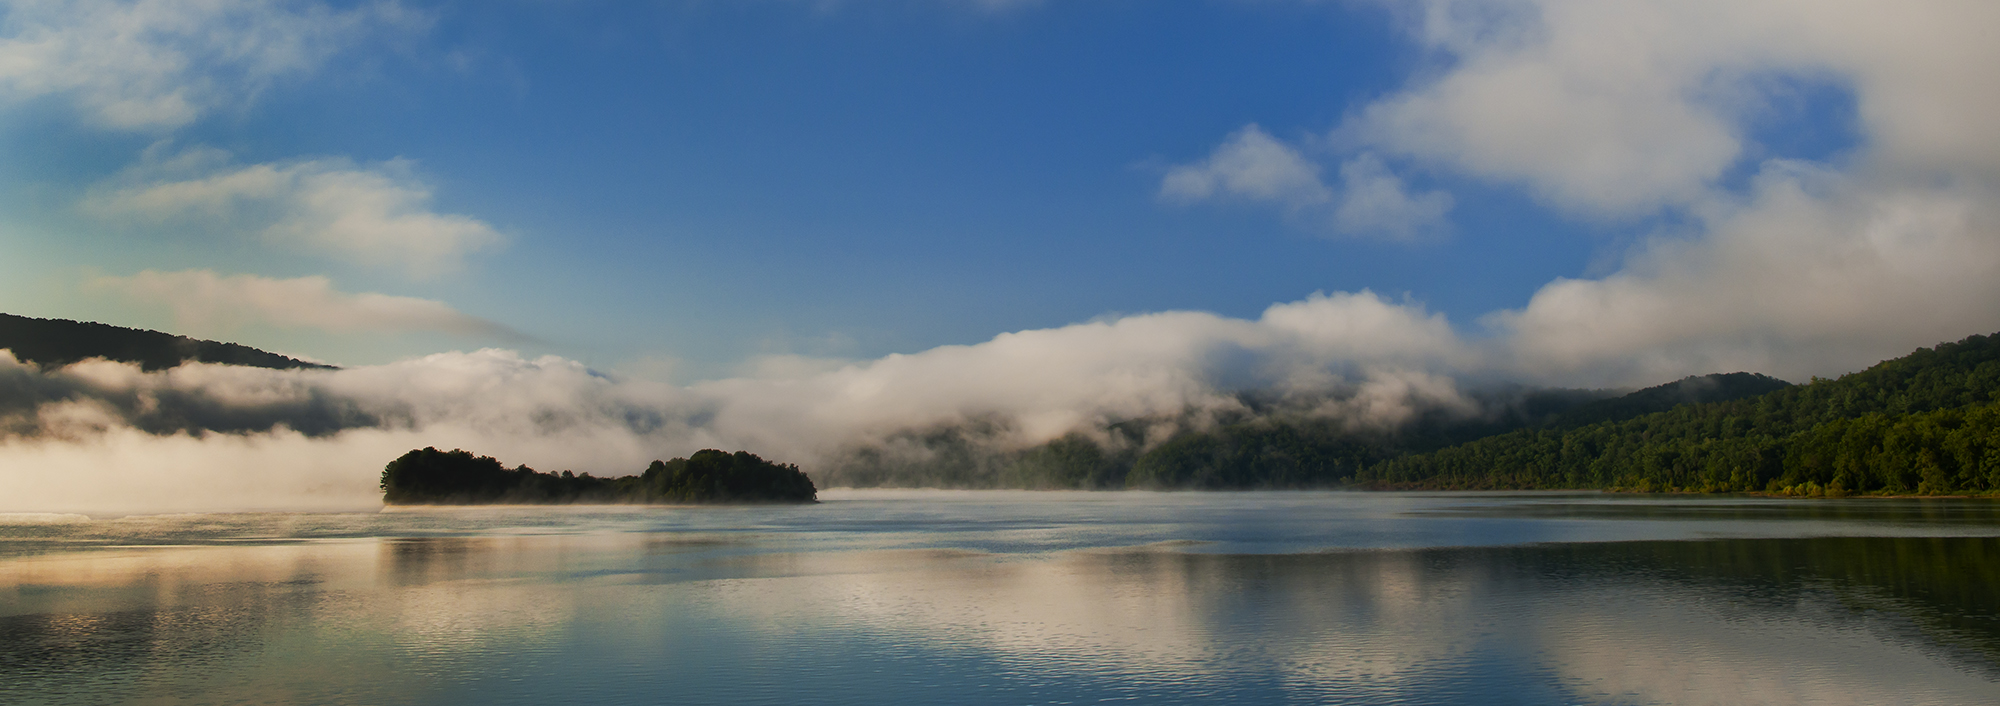 Lake Moomaw in Morning Fog and Light, Ba